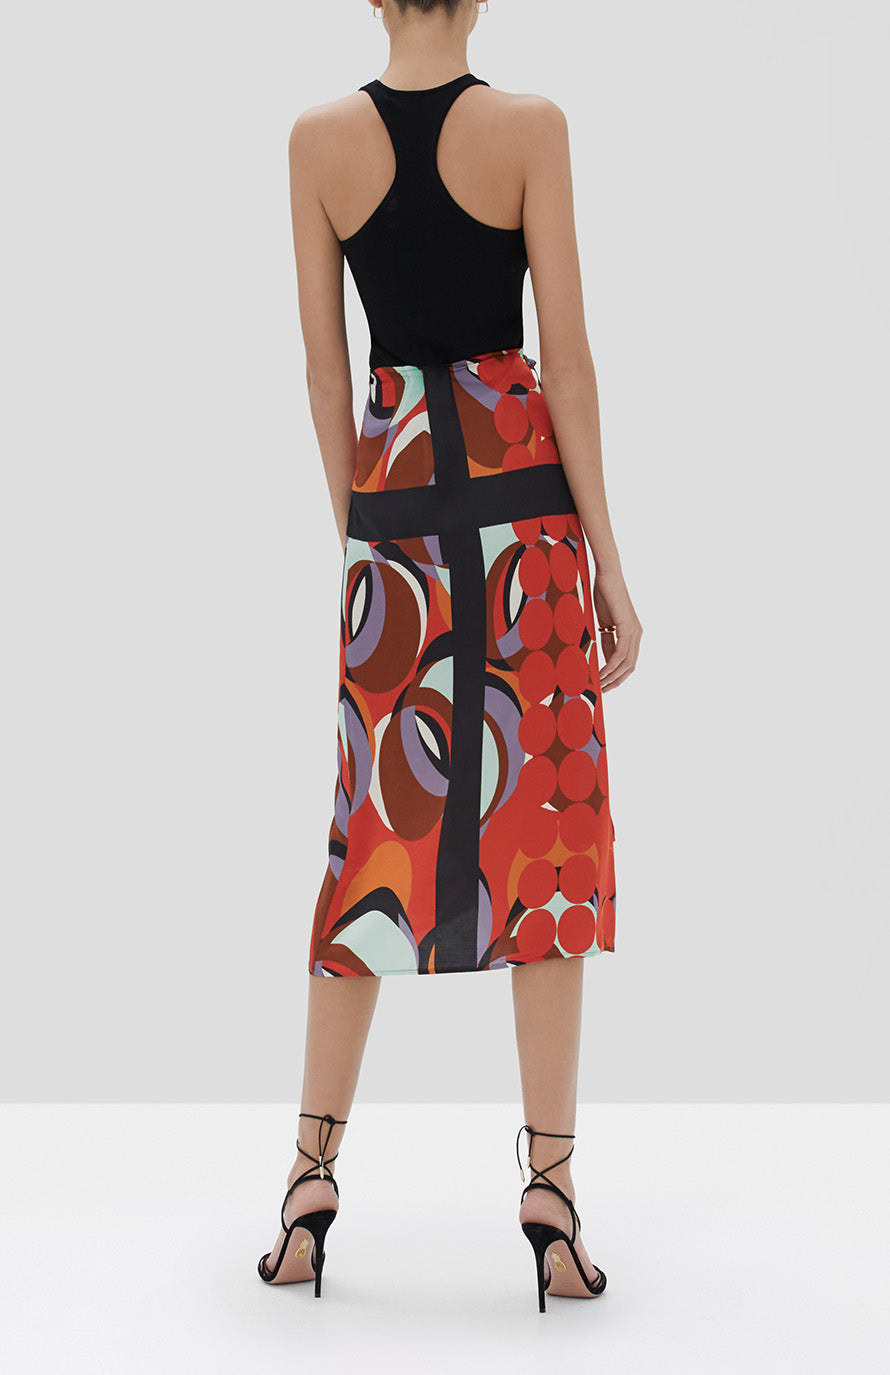 Alexis Quora Skirt in Red Eclipse from the Fall Winter 2019 Ready To Wear Collection - Rear View